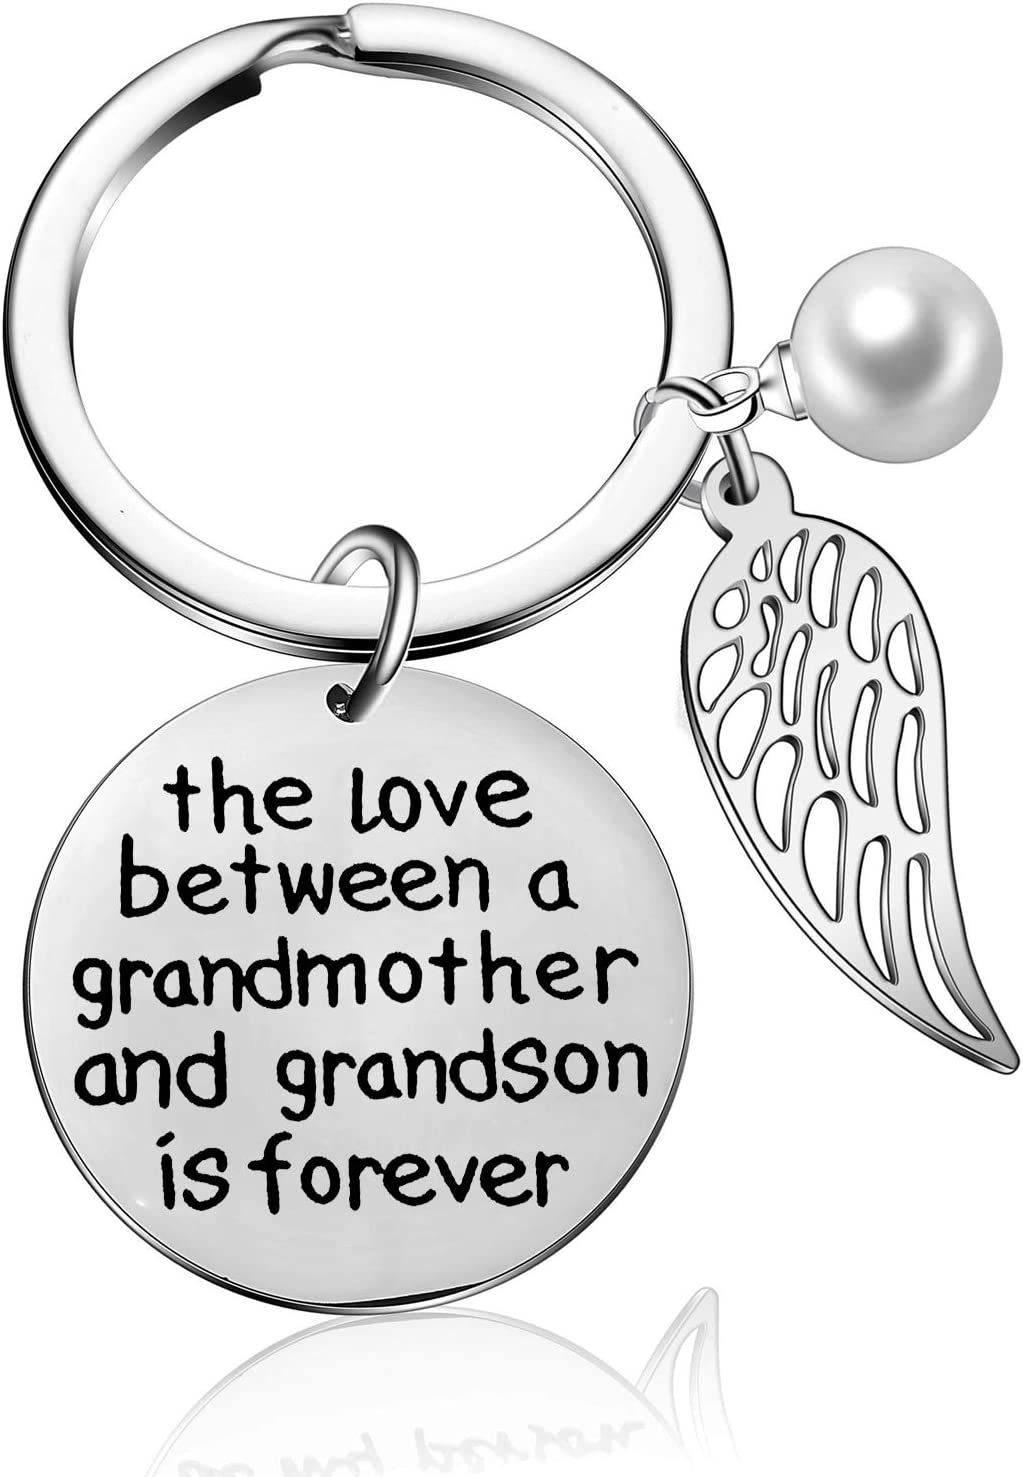 The Love Between Grandmother and Granddaughter Grandson is Forever Keyring Wing Keychain Gift from Granddaughter Grandson Family Mother's Day Birthday Jewelry (Grandmother and Grandson)